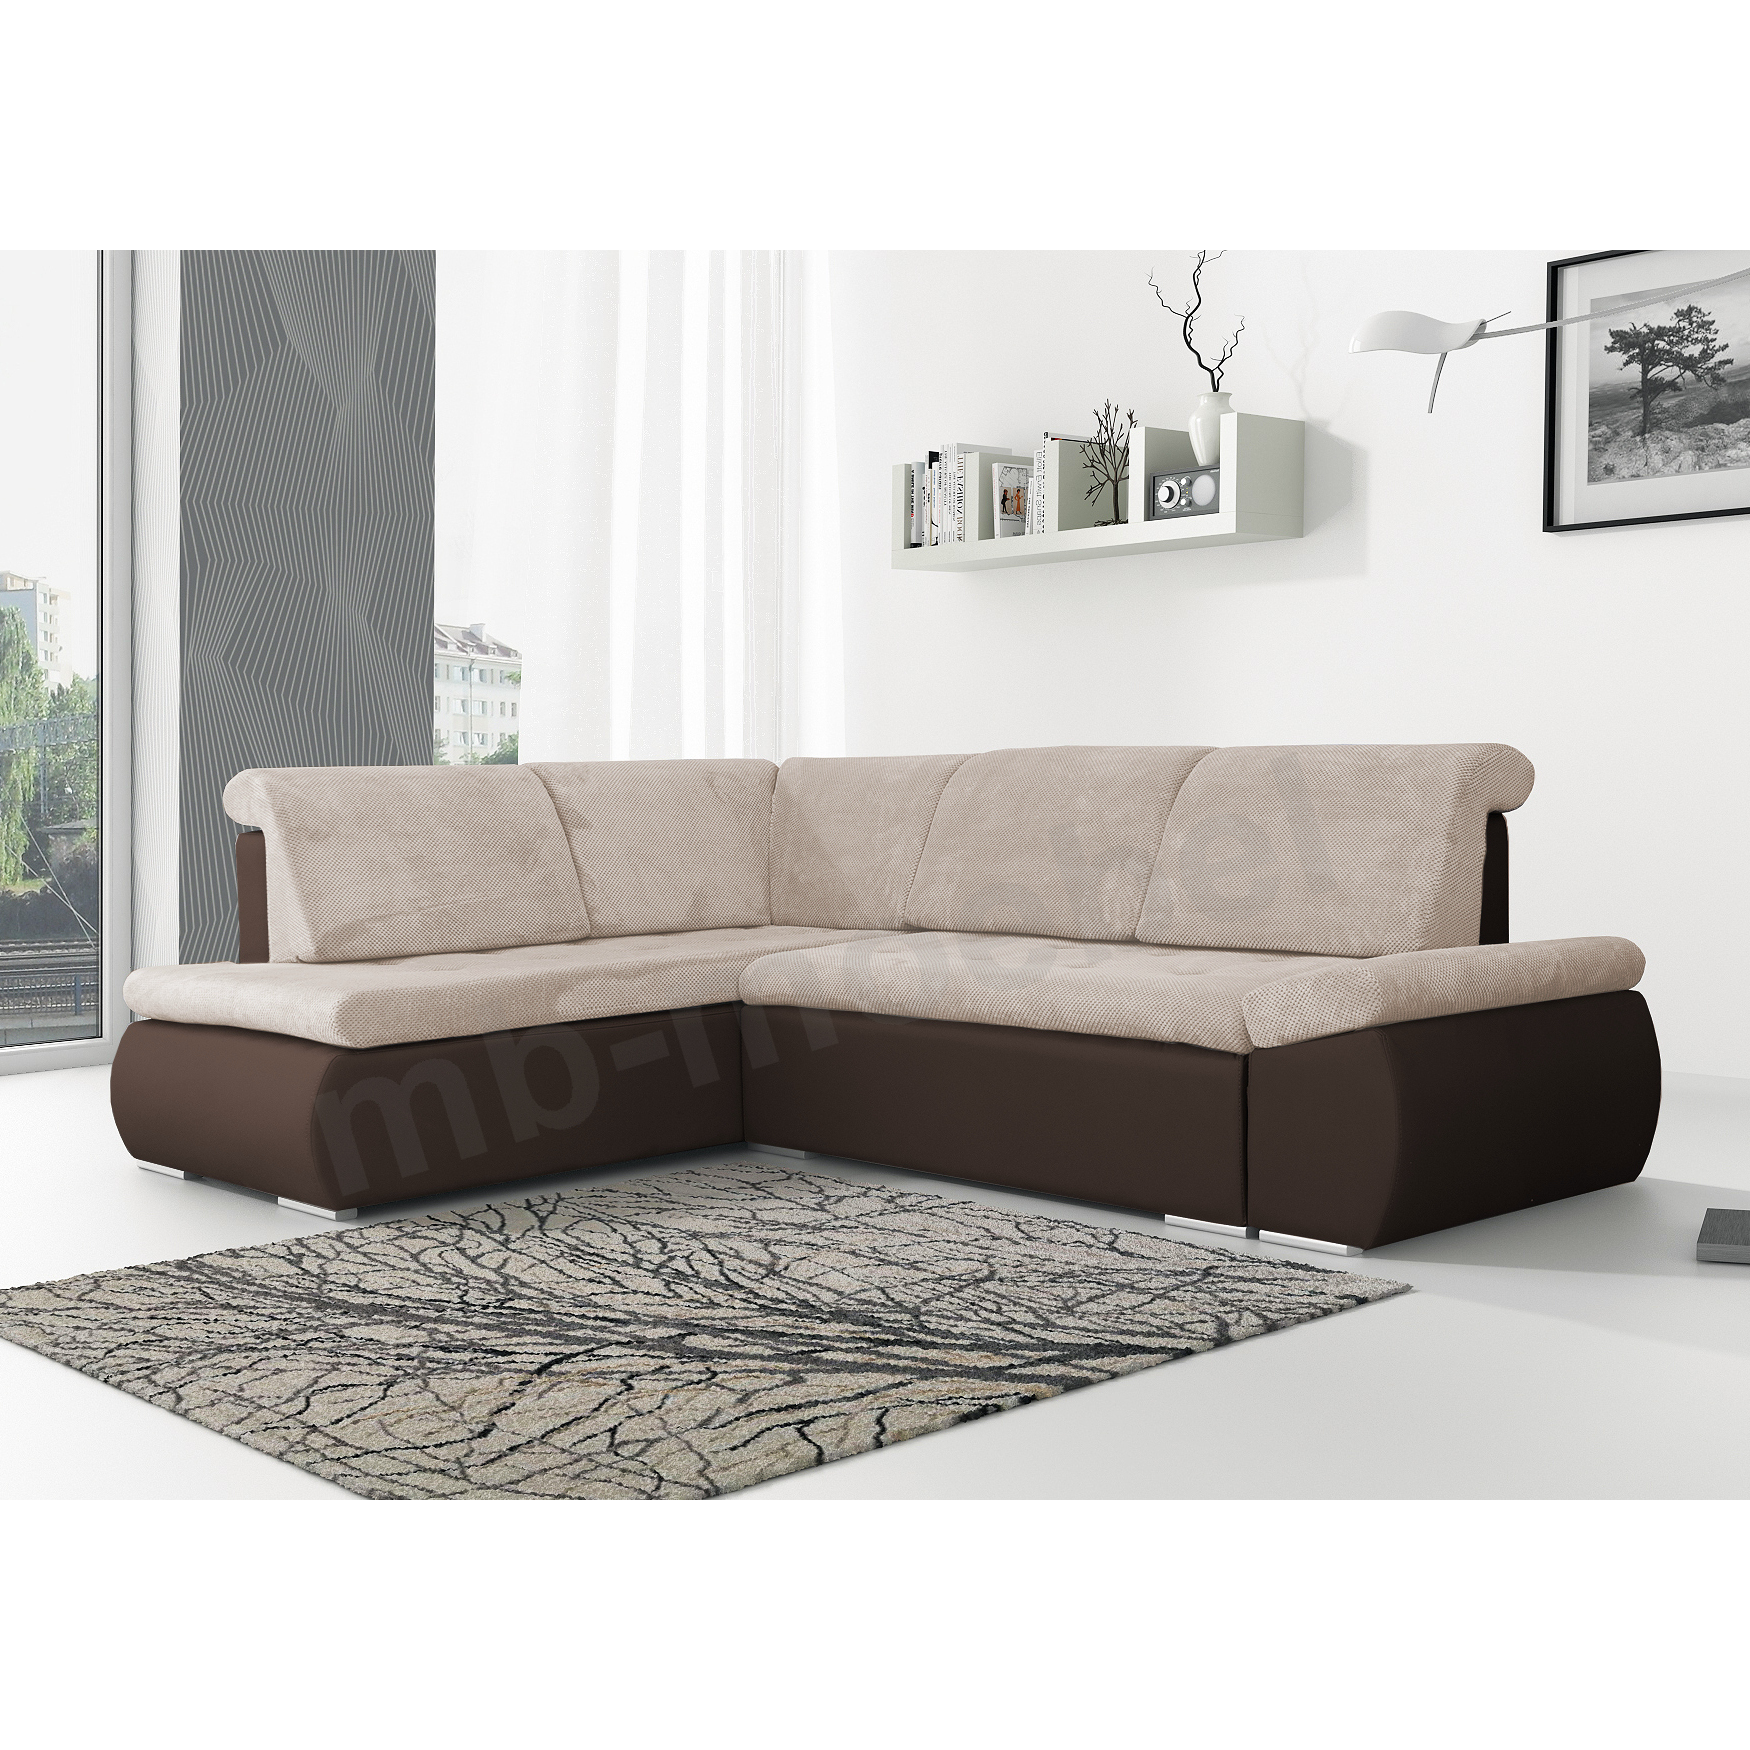 ecksofa bonita beige braun m bel muller braun. Black Bedroom Furniture Sets. Home Design Ideas